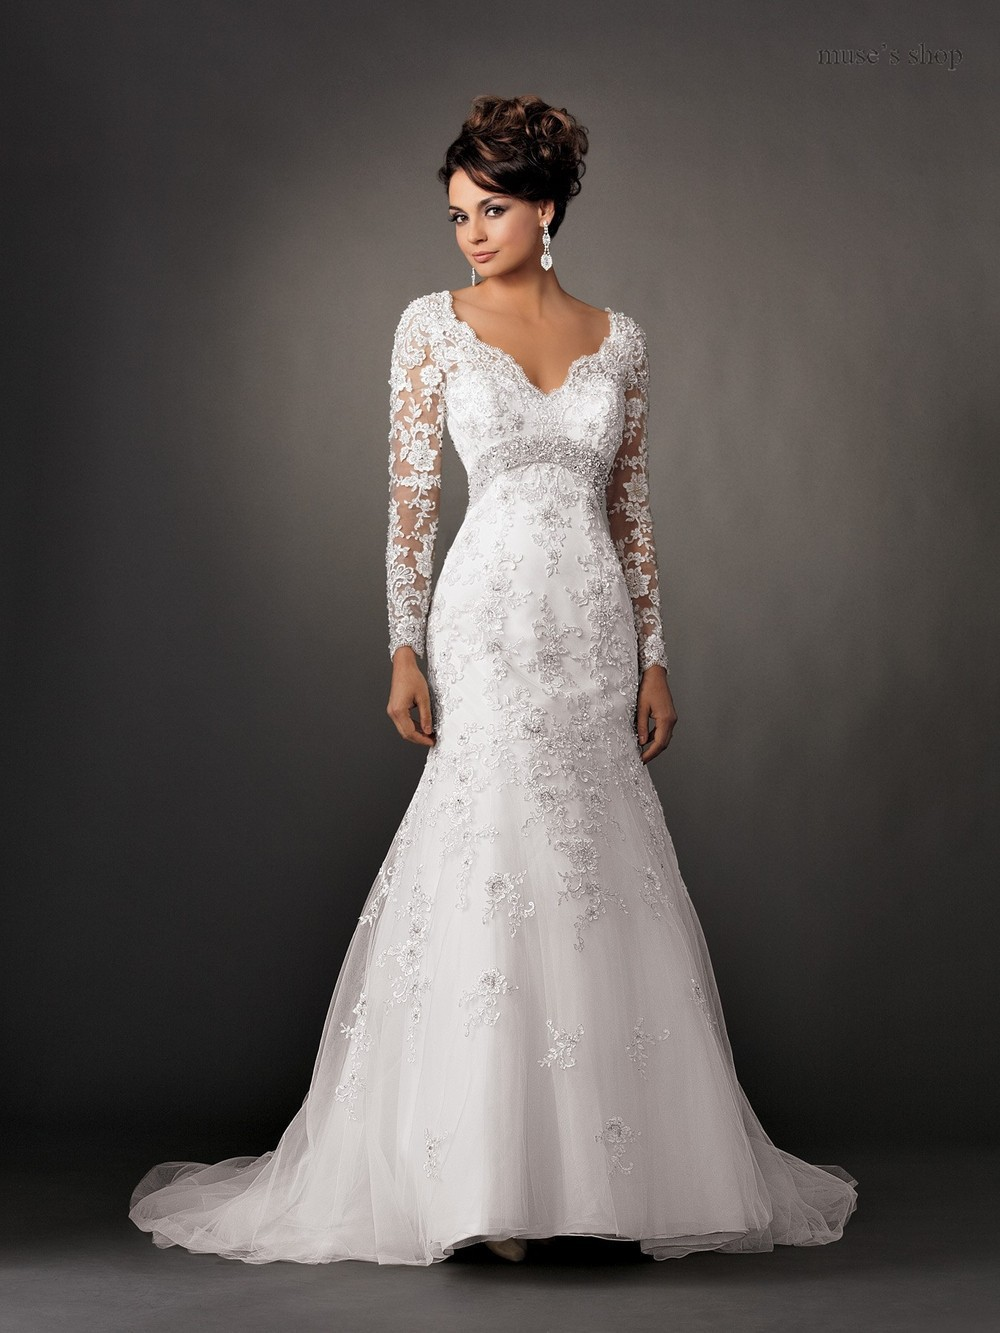 v neck vintage long sleeve lace wedding dresses backless On wedding dress long sleeve lace